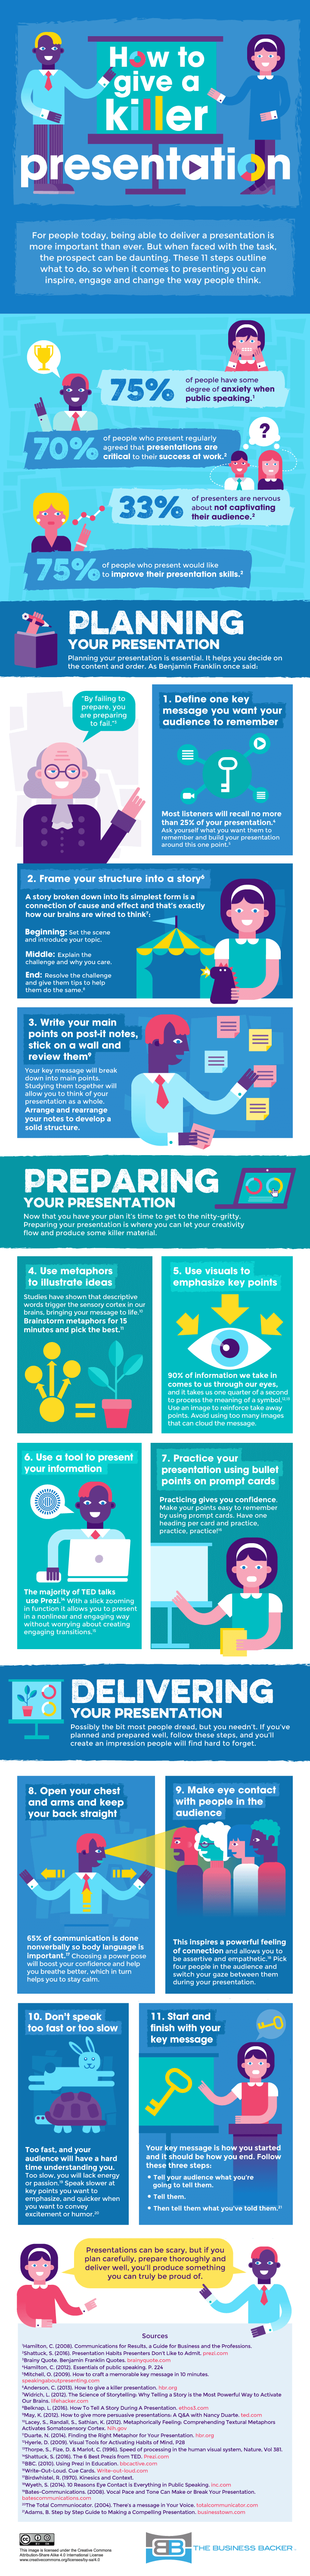 How-to-Give-a-Killer-Presentation